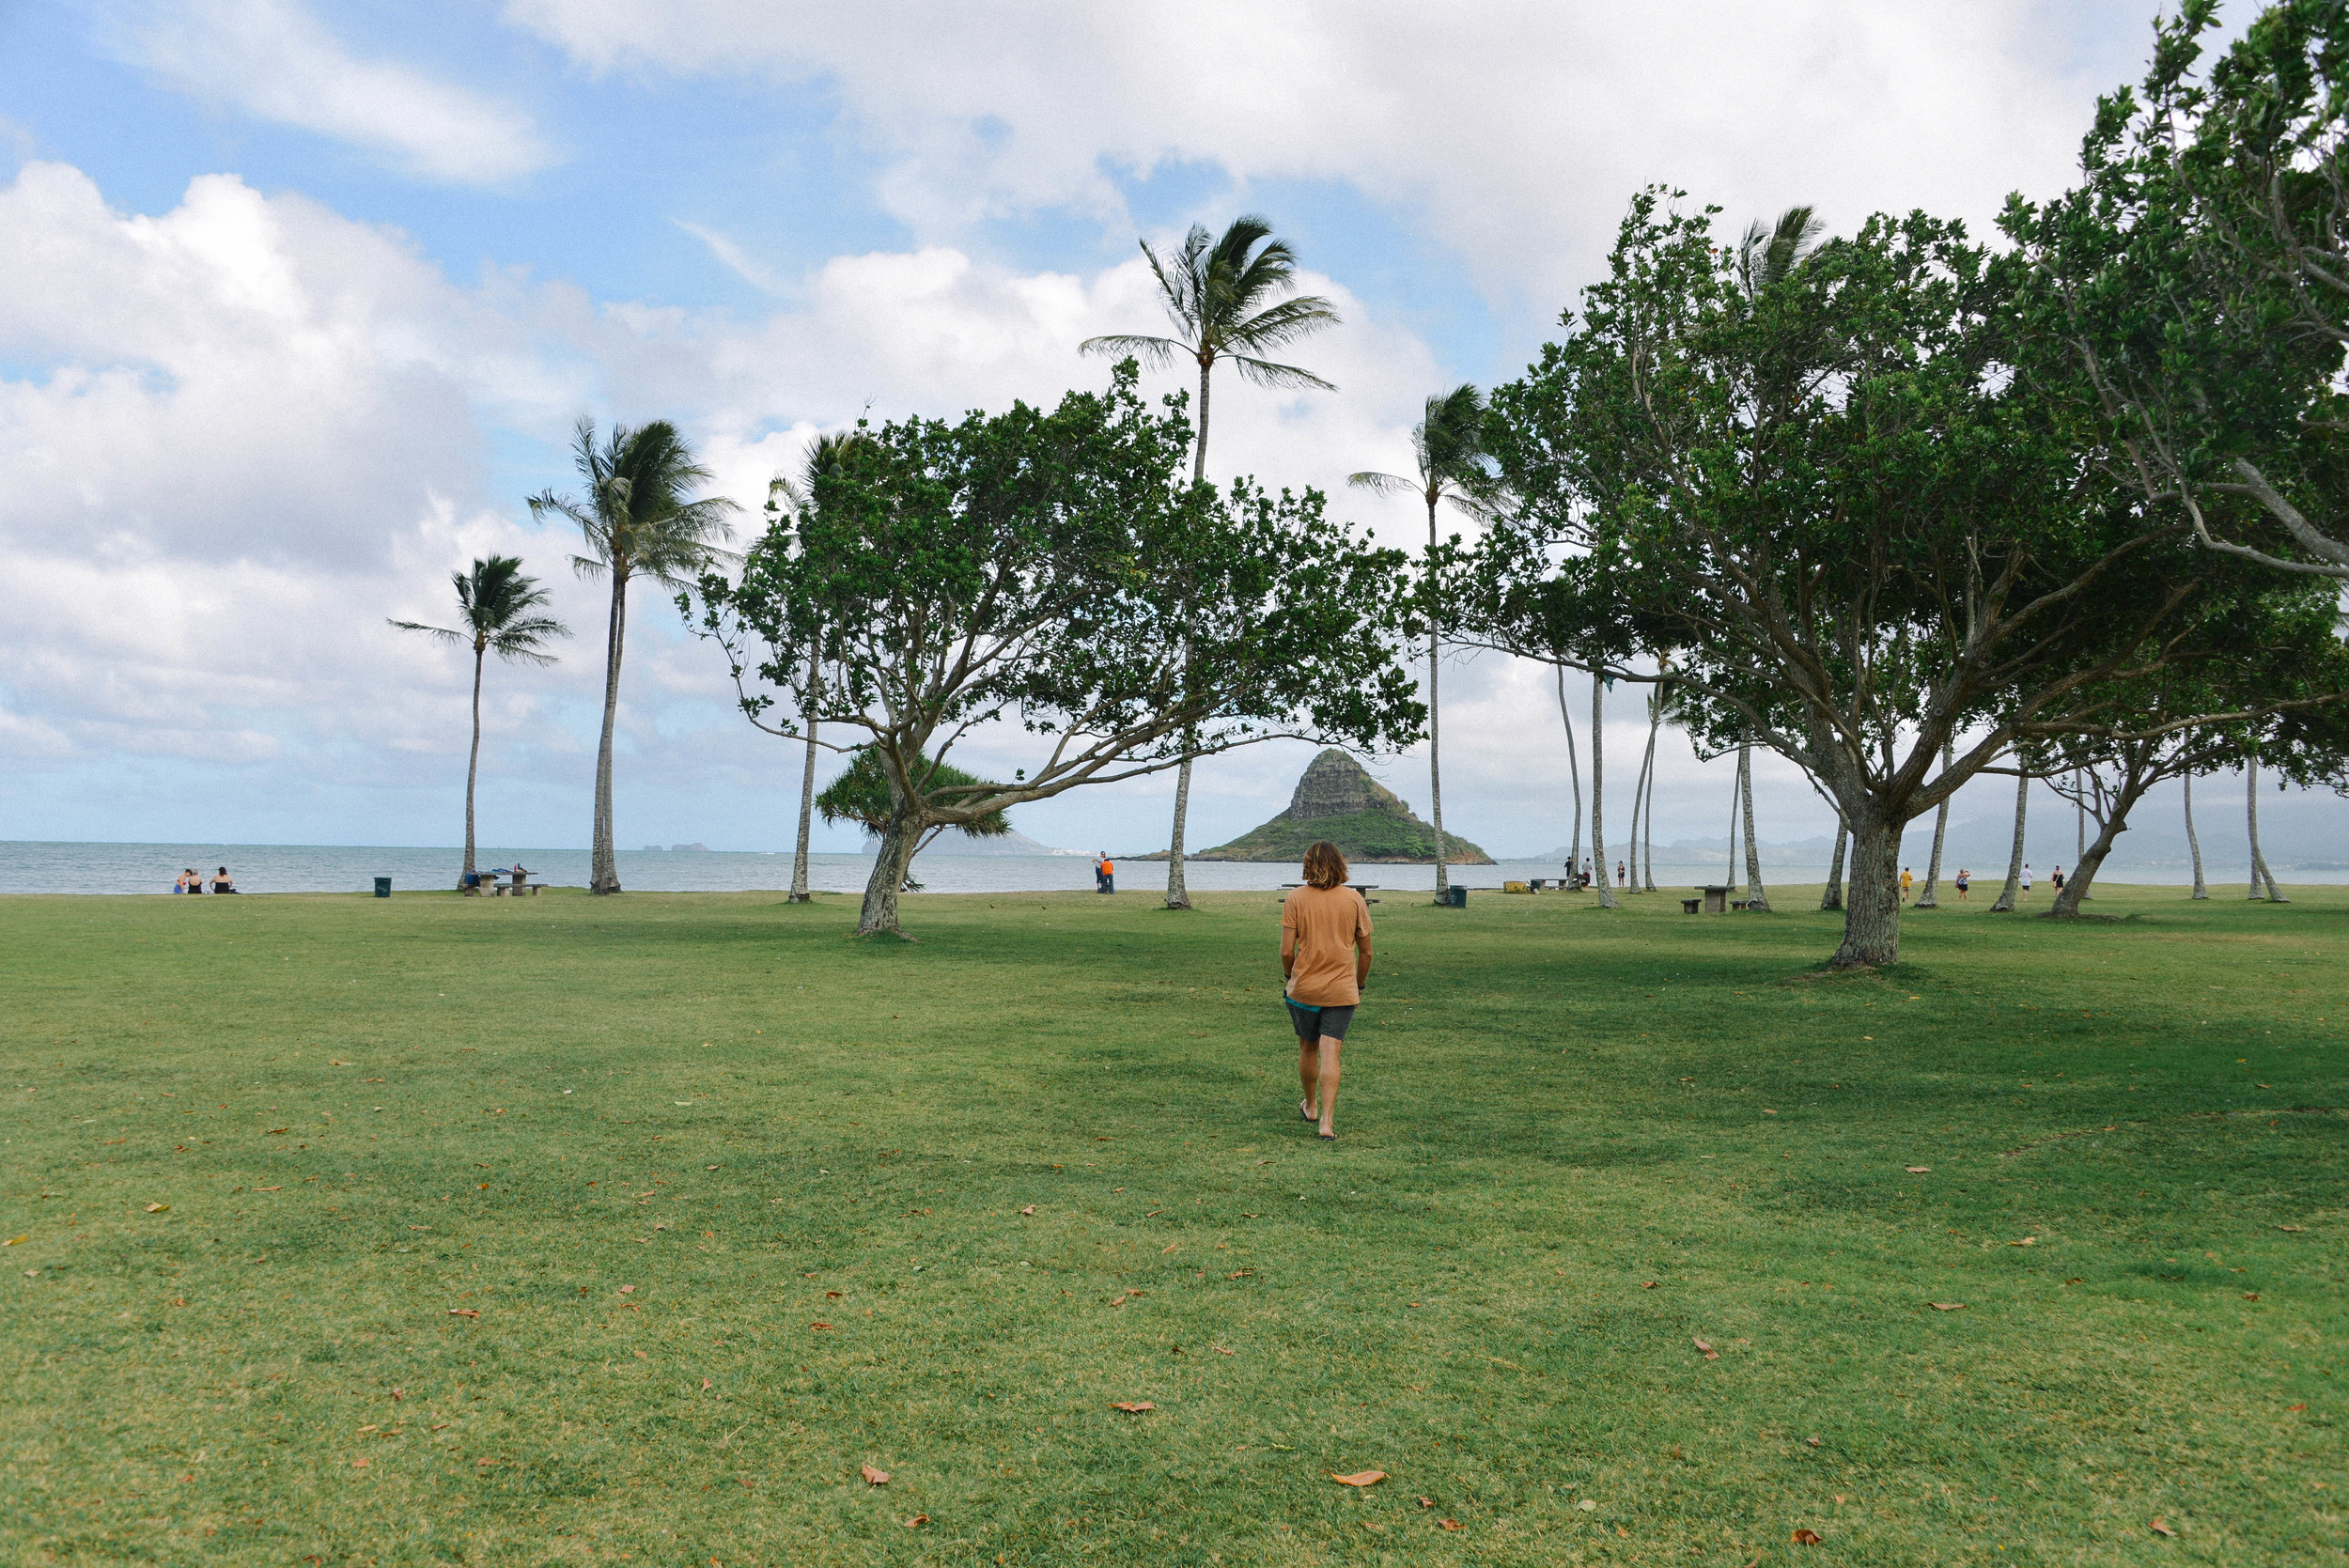 Afternoon walk in Kualoa Park, Oahu.